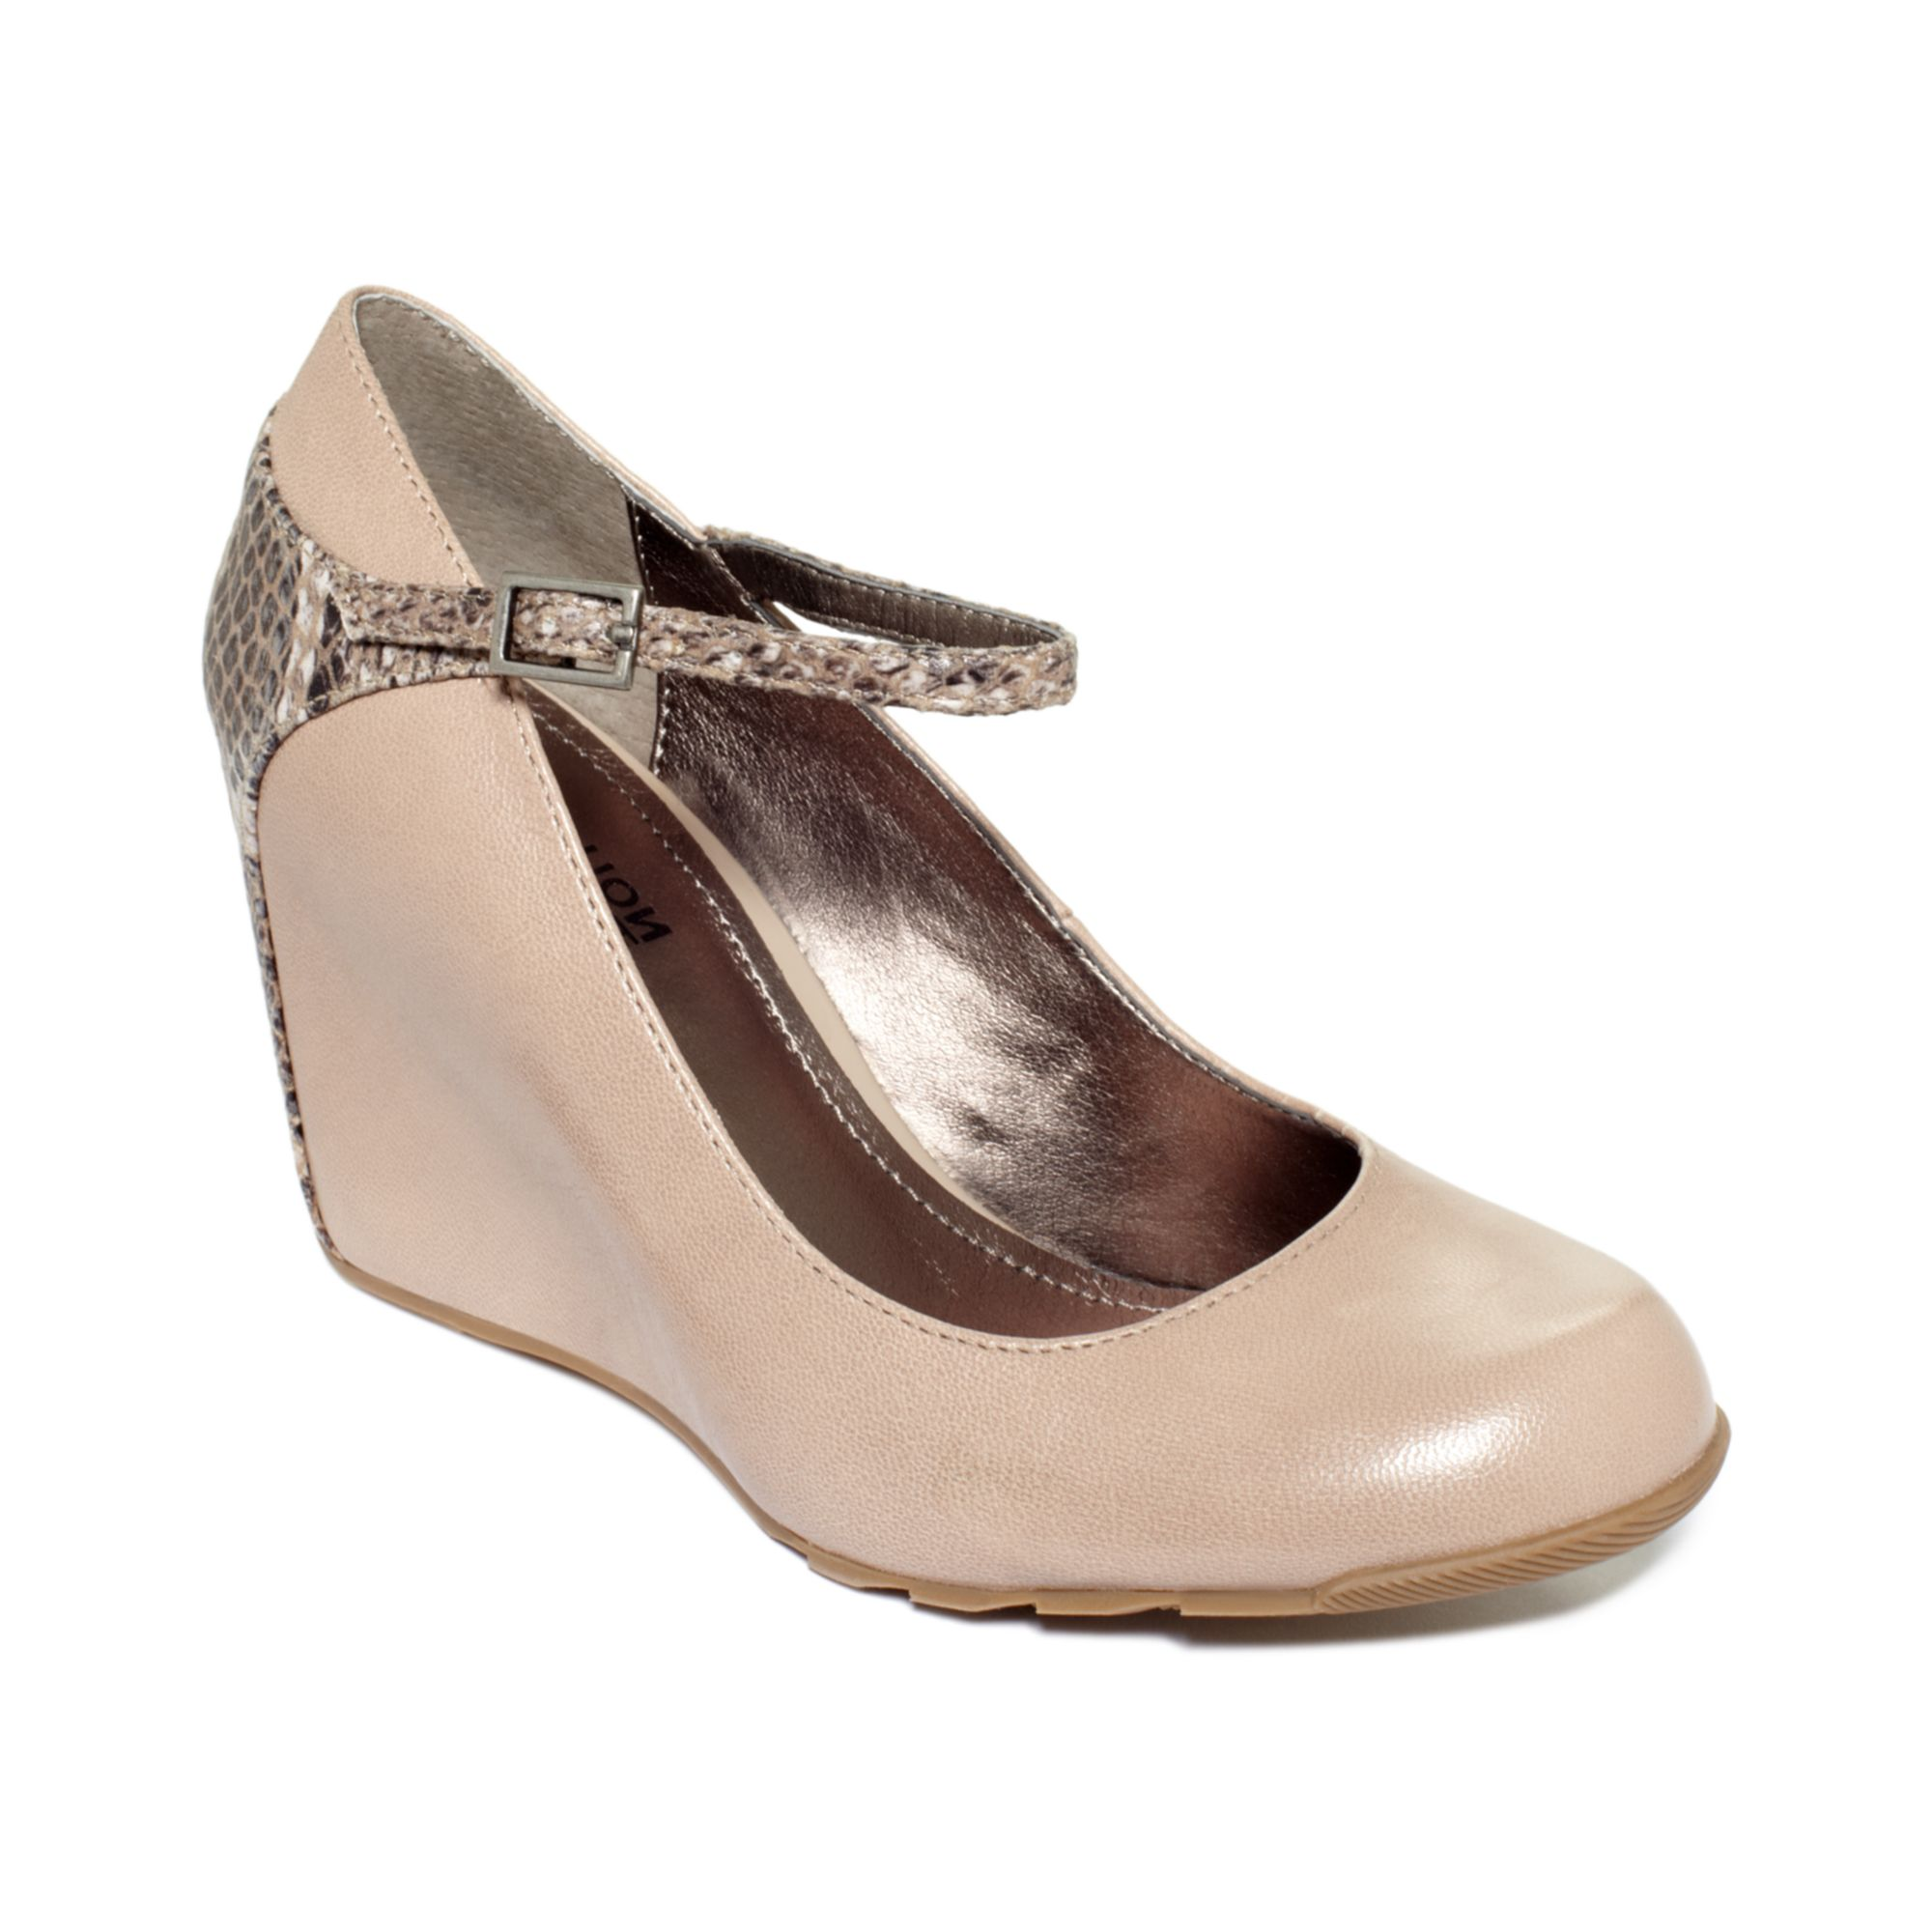 Kenneth Cole Reaction Leather Mary Jane Shoes Women